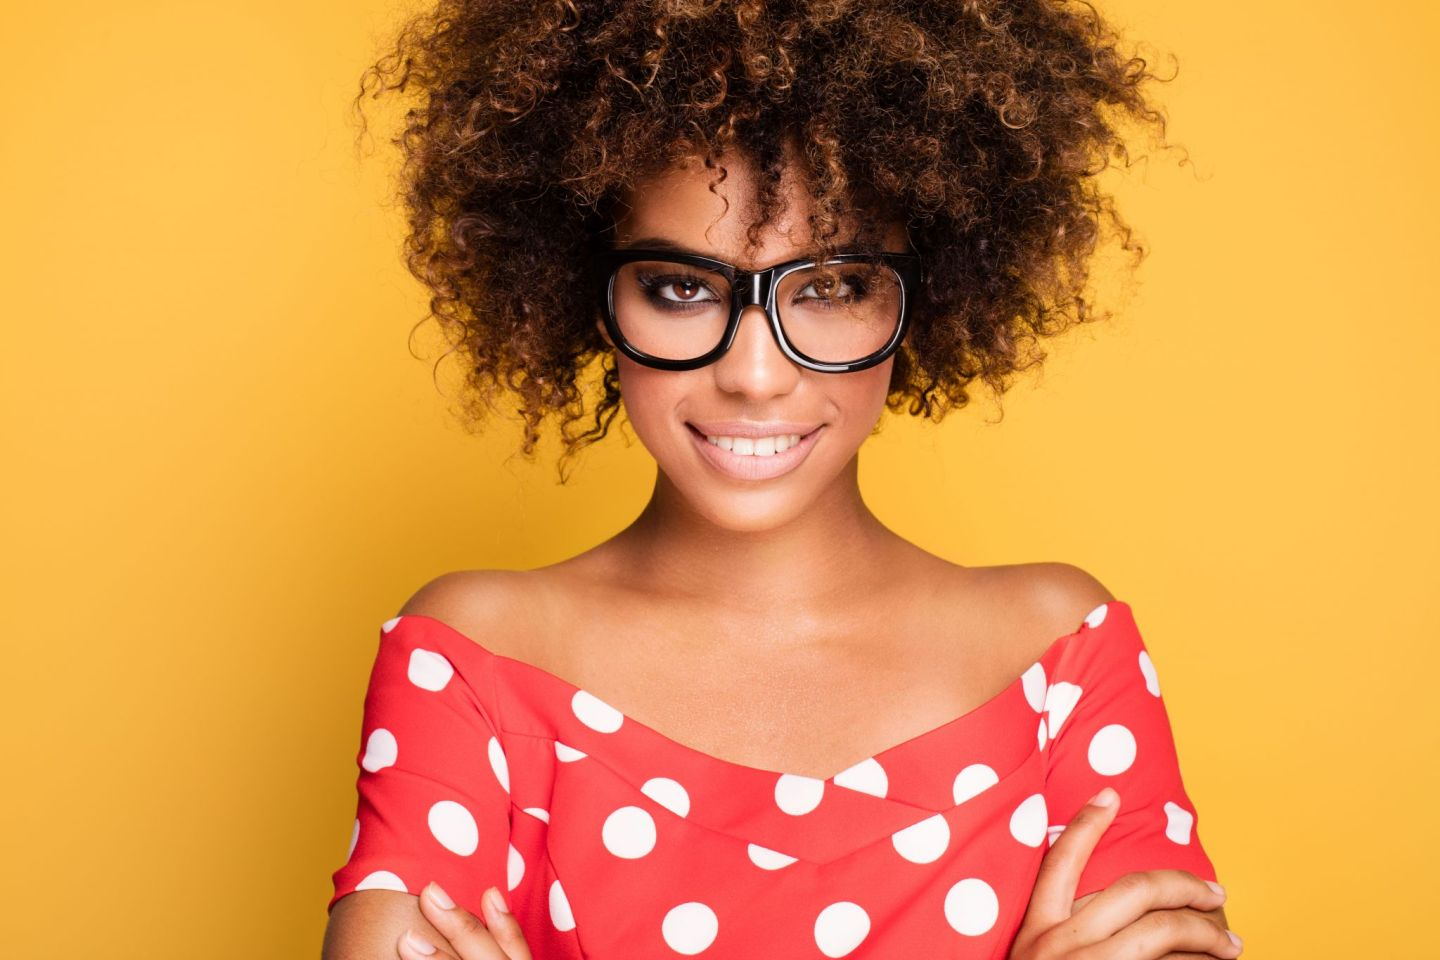 Detangler Issues? We've Got 4 Natural Hair Hacks You Need For Perfect Detangling!